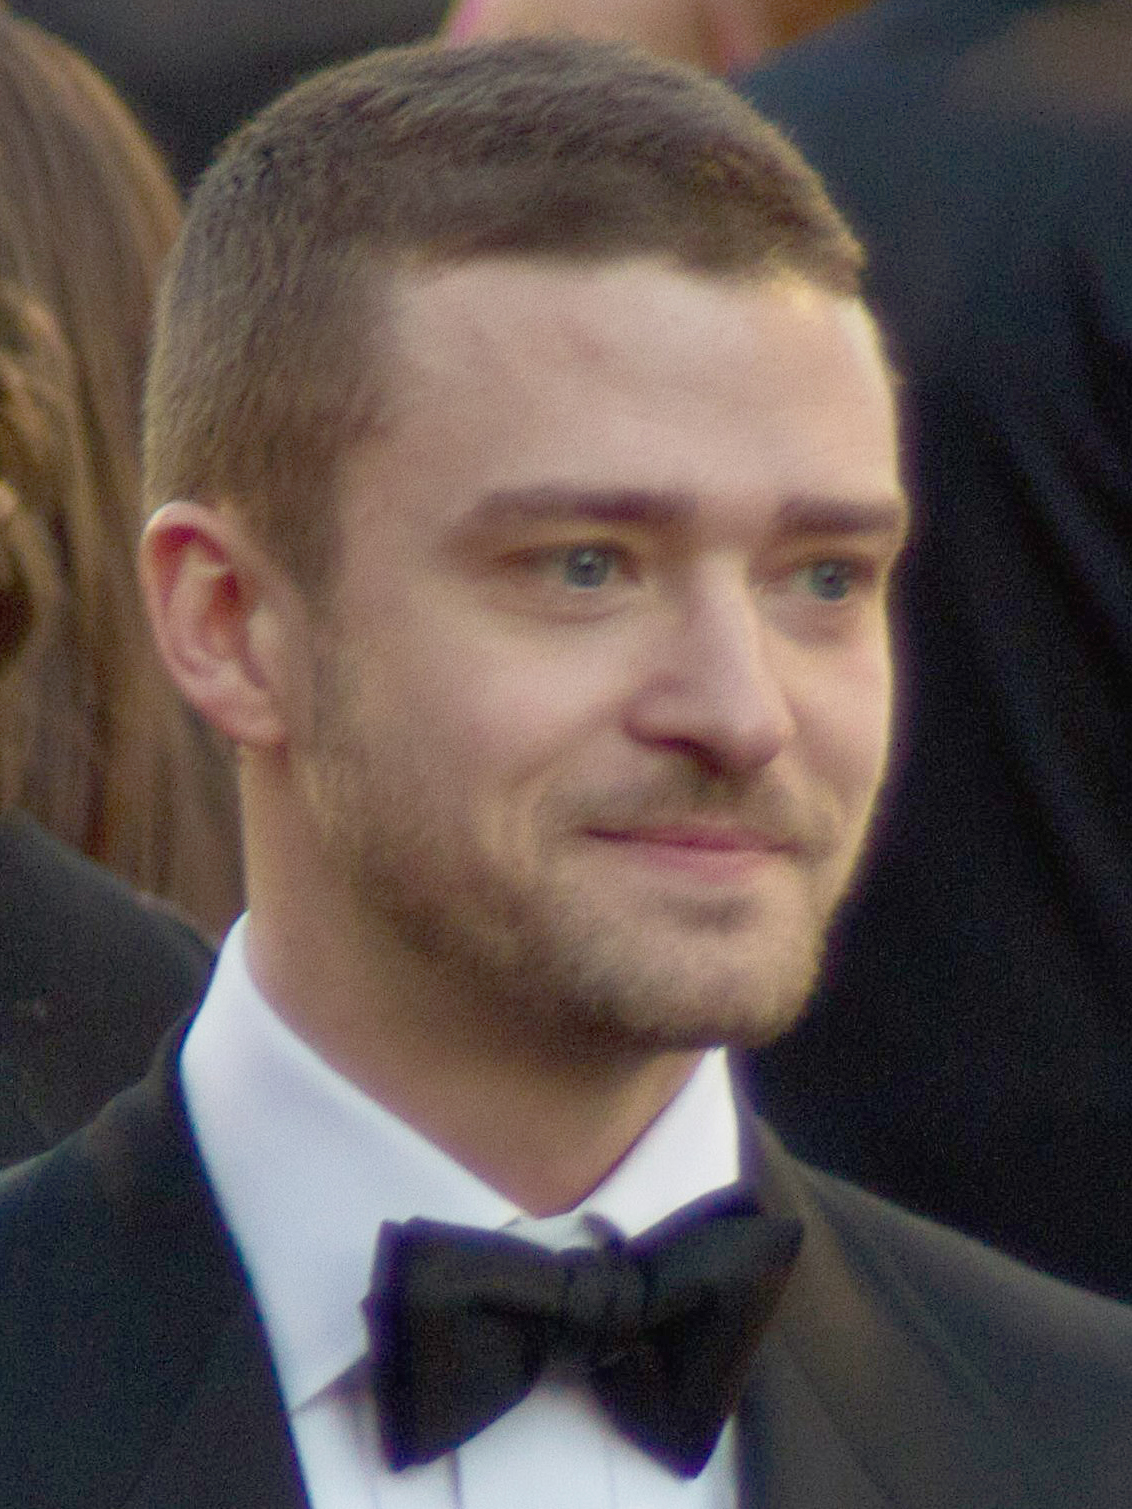 Justin Timberlake at the 2011 Academy Awards